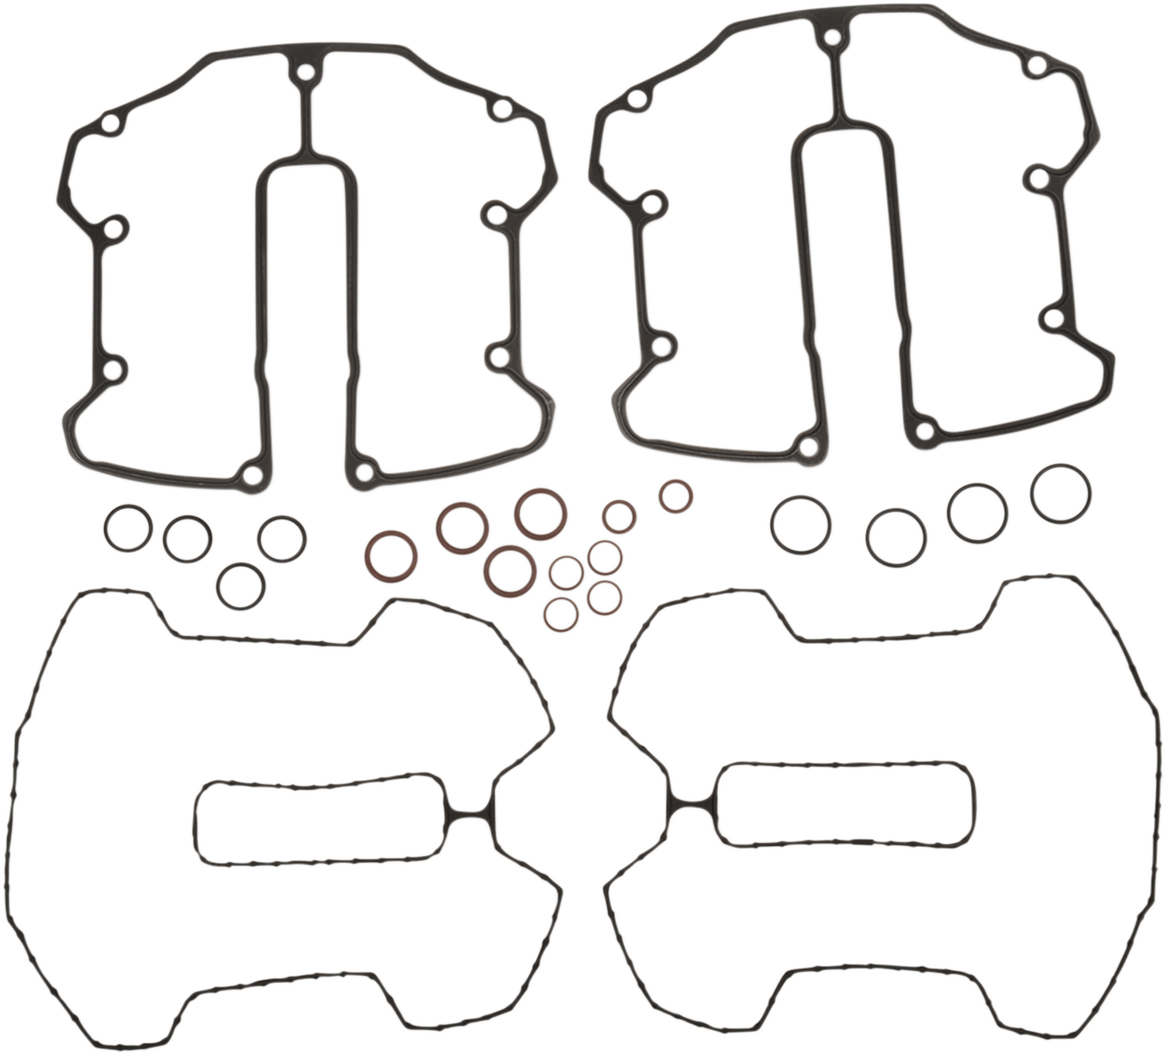 Cometic Engine Rocker Box Gasket Kit 17-20 Harley M8 Touring Softail FLHX FLFB